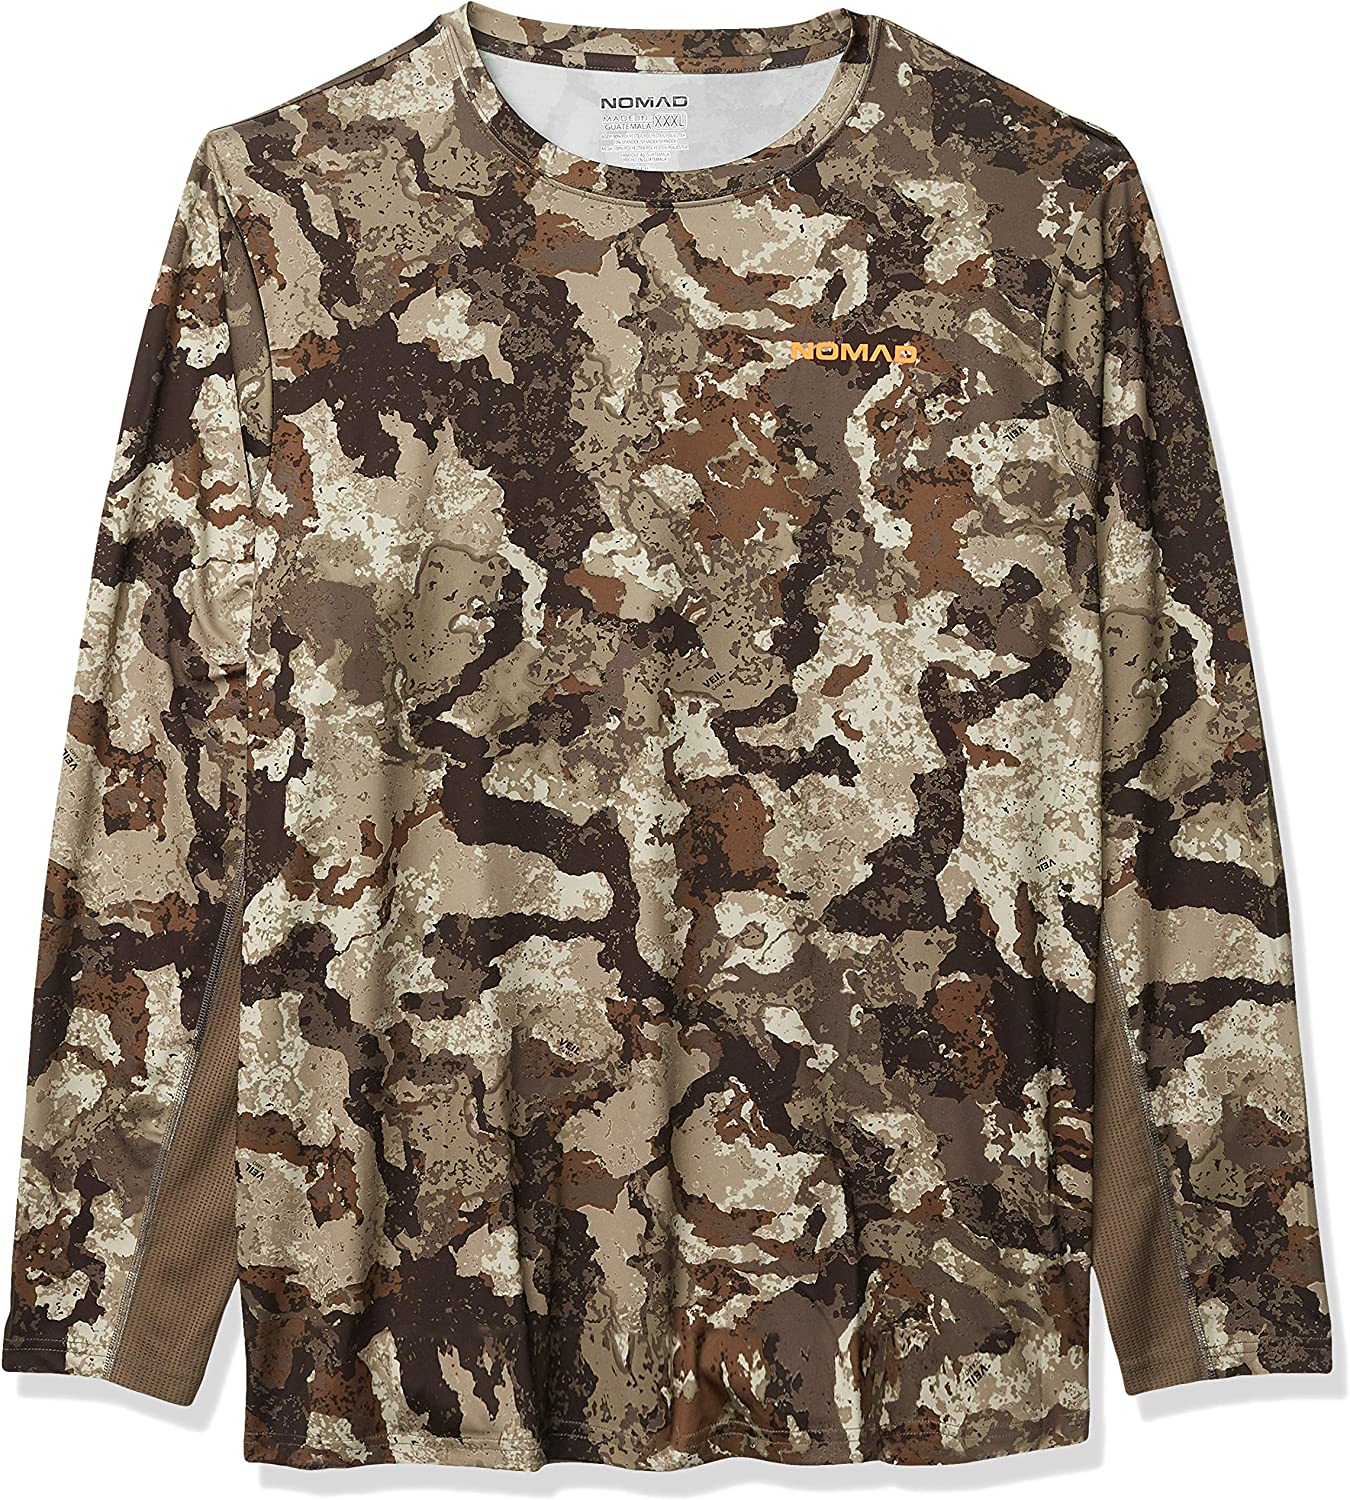 Nomad Men's Long Sleeve Cooling Tee | Hunting T-Shirt with UPF 30+ Sun Protection